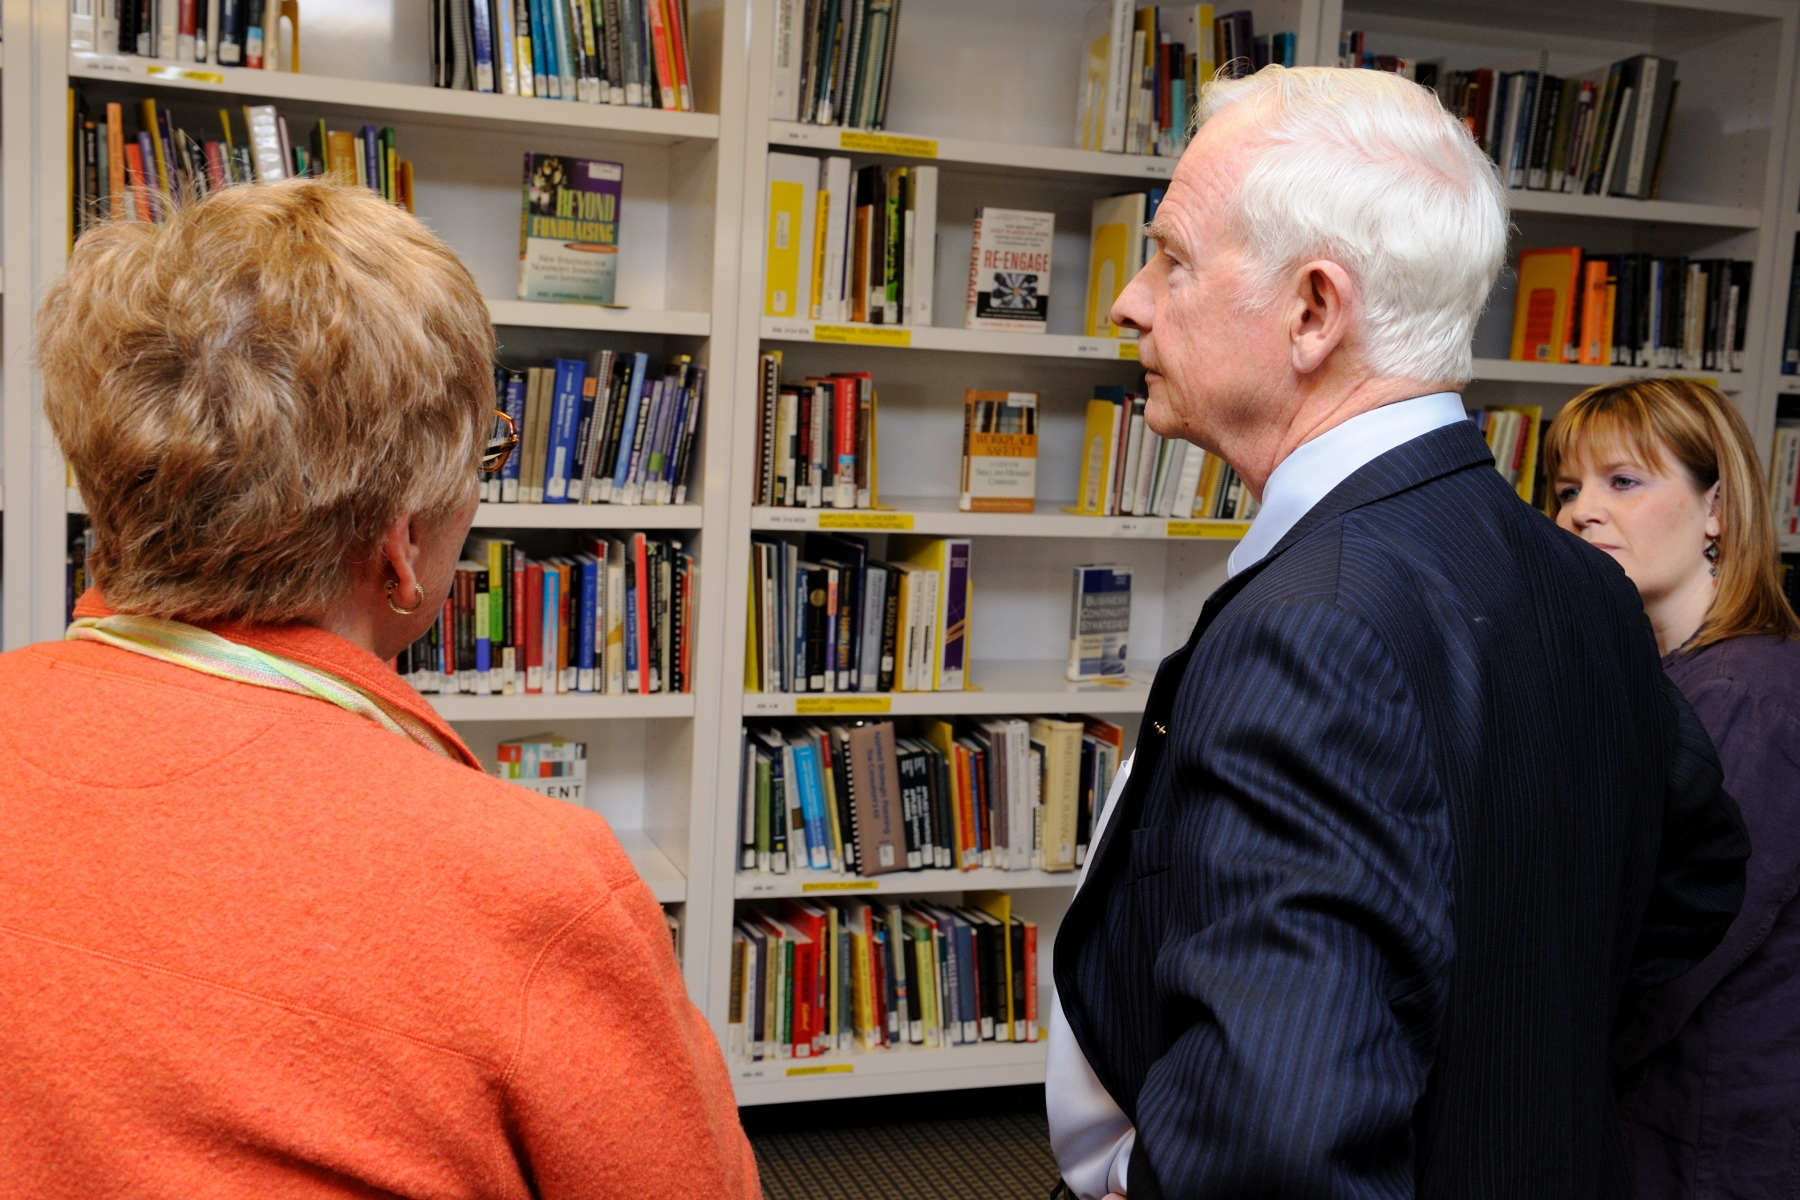 The Governor General visited the Volunteer Calgary Library, which offers a broad selection of lending materials and reference resources, including volunteer management materials and other information to help non-profit organizations in their day-to-day operations. There are more than 3 600 books, periodicals, kits, audio CDs and DVDs available, covering a wide range of topics.